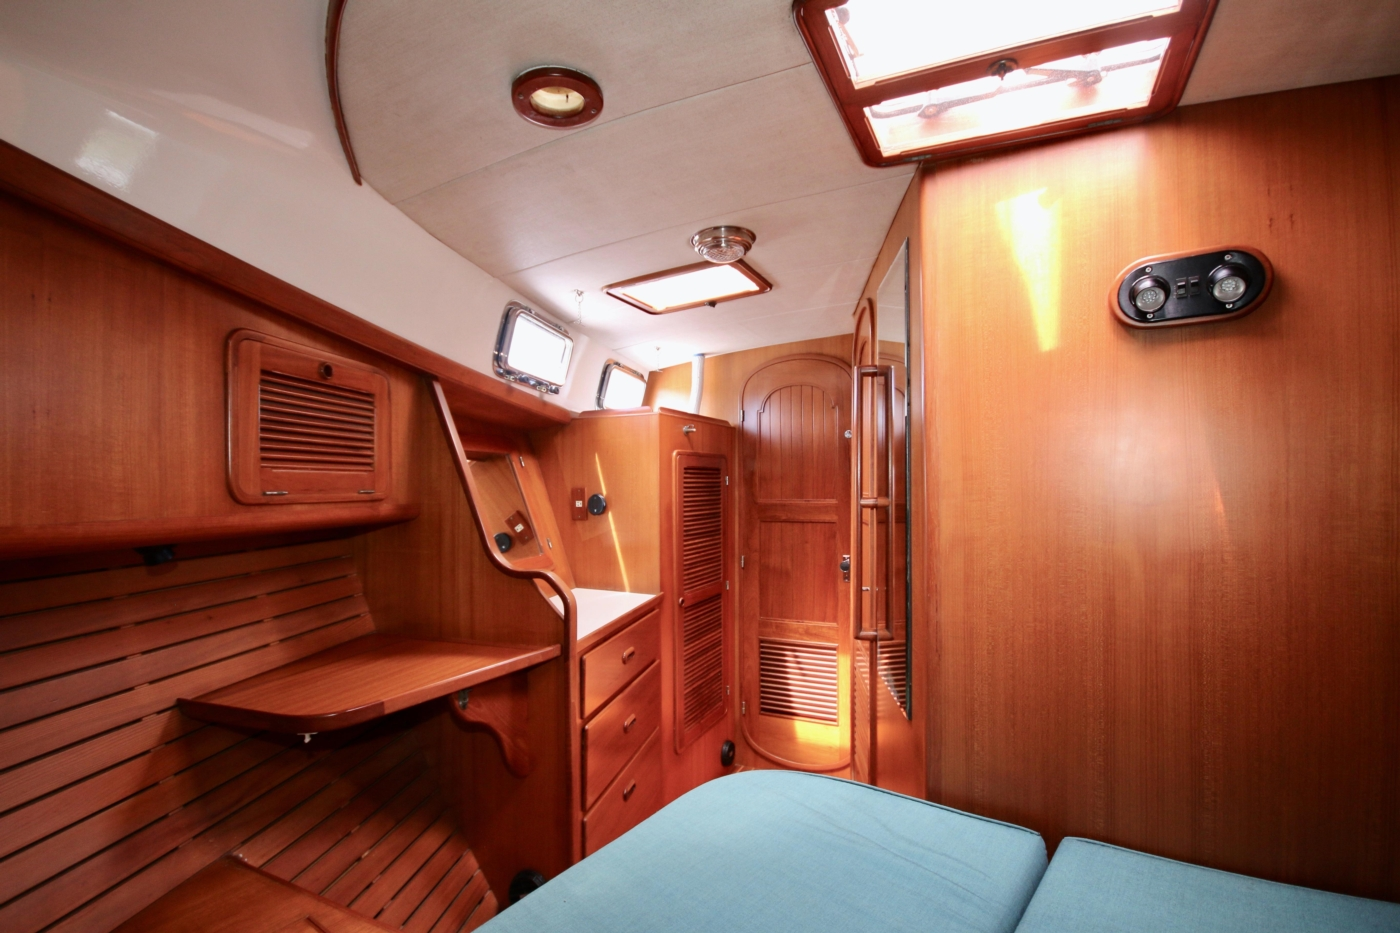 1996 Tanton 45 Offshore, Fore cabin aft view